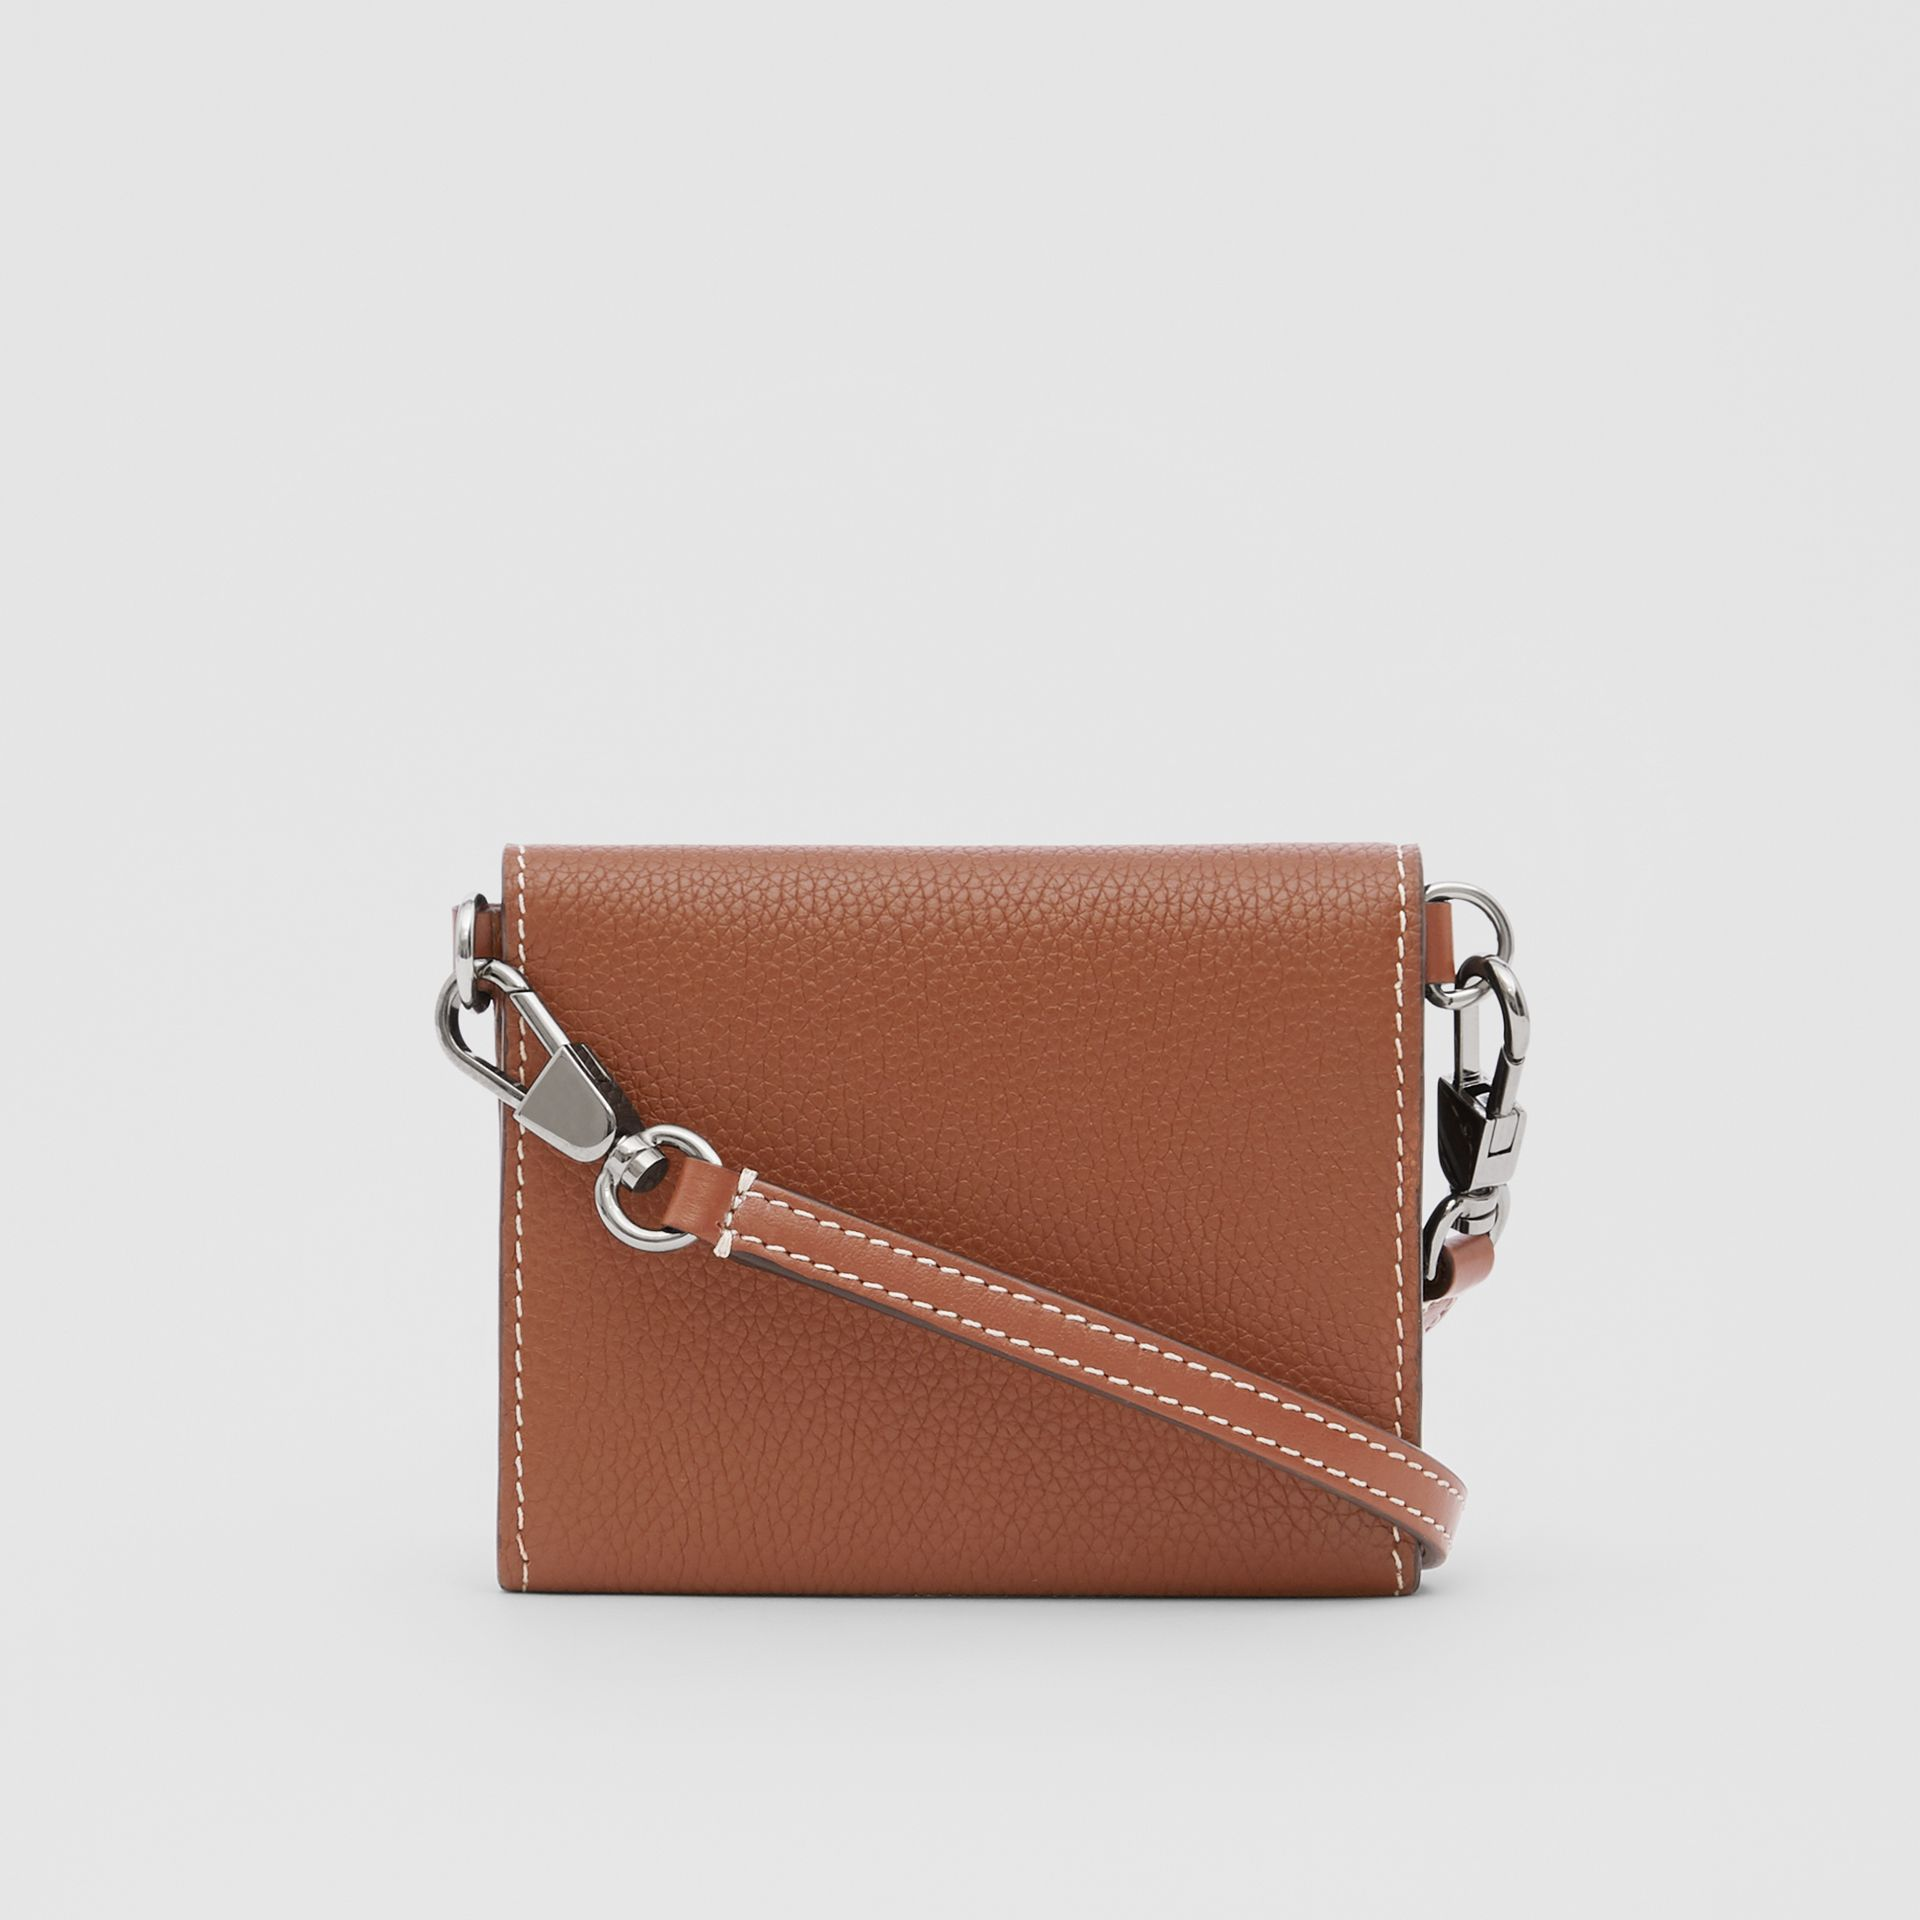 Small Grainy Leather Wallet with Detachable Strap in Tan | Burberry - gallery image 9